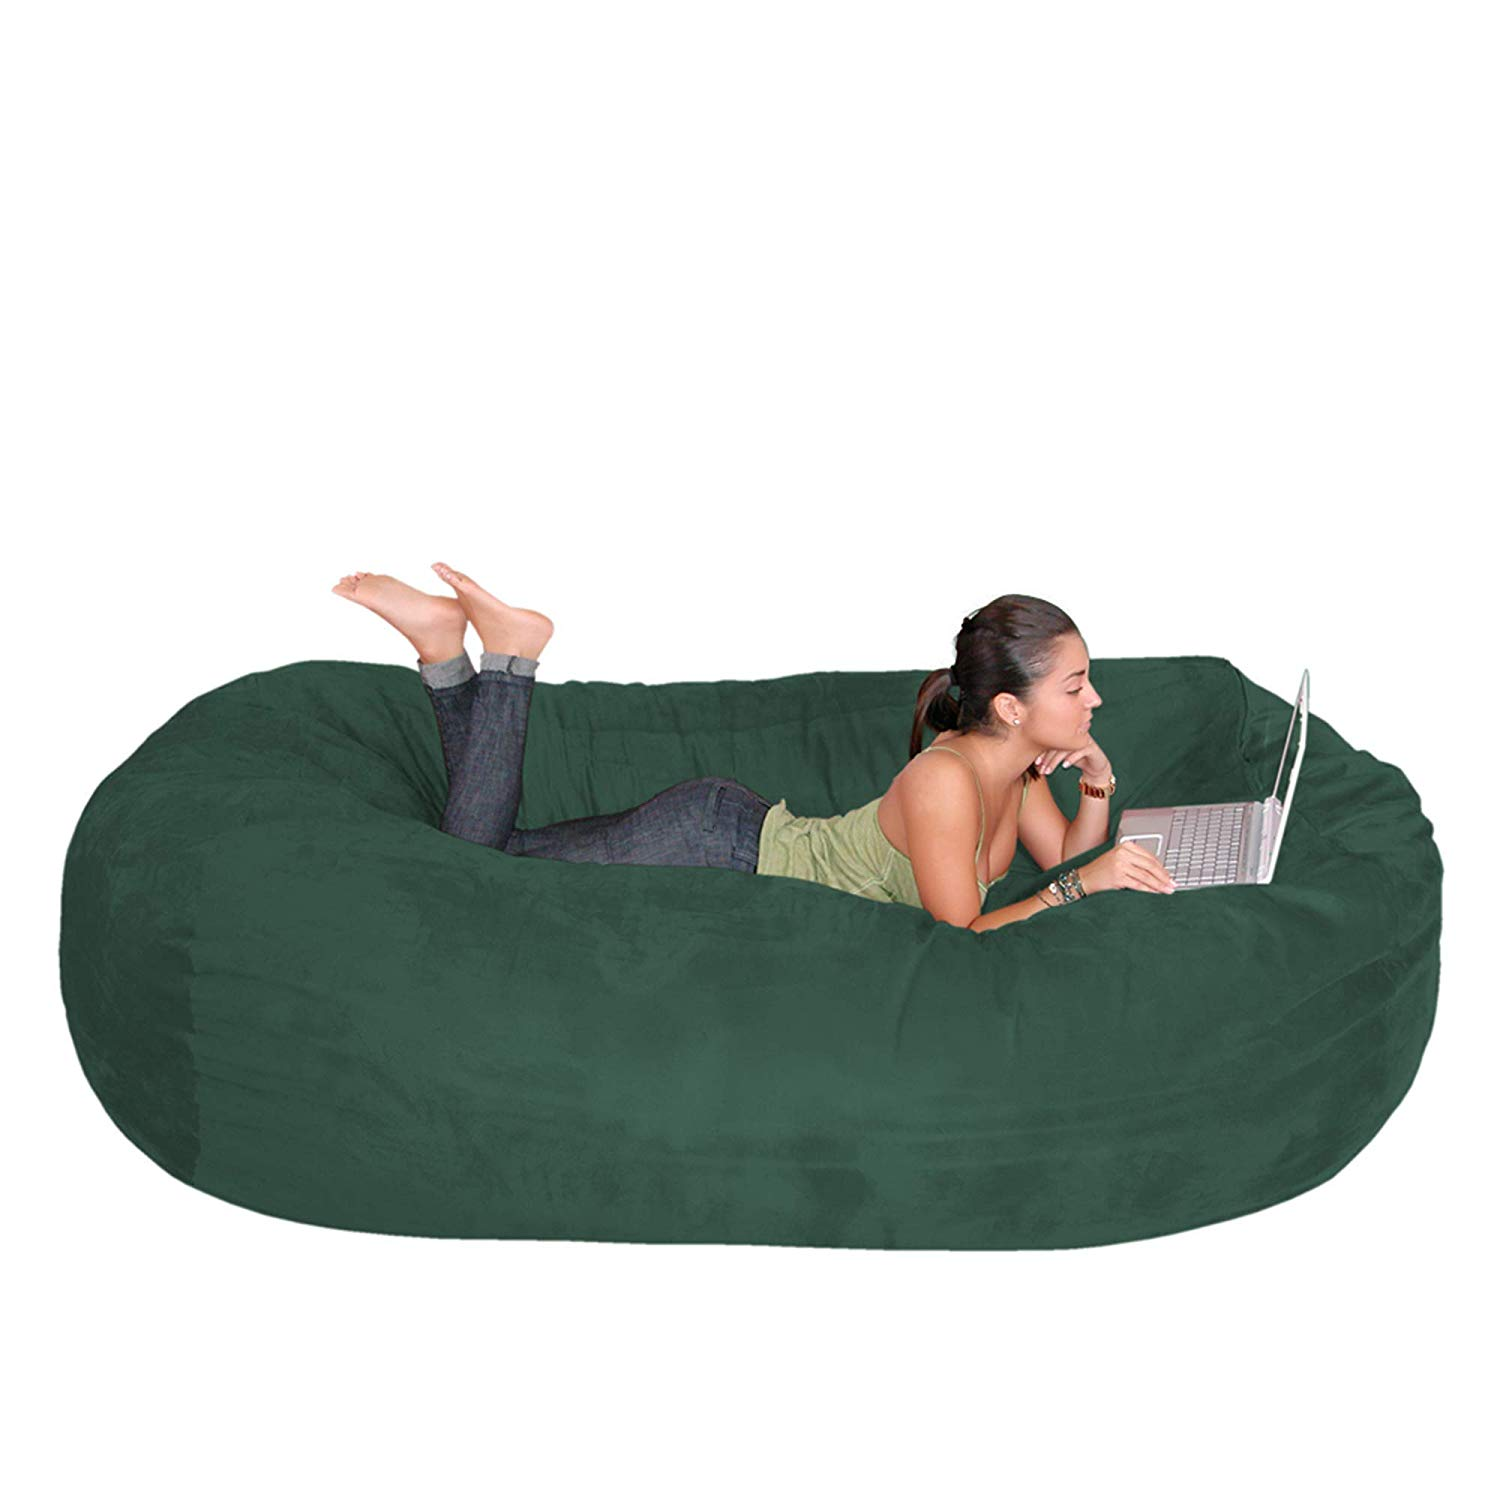 Cozy Sack 8-Feet Bean Bag Chair